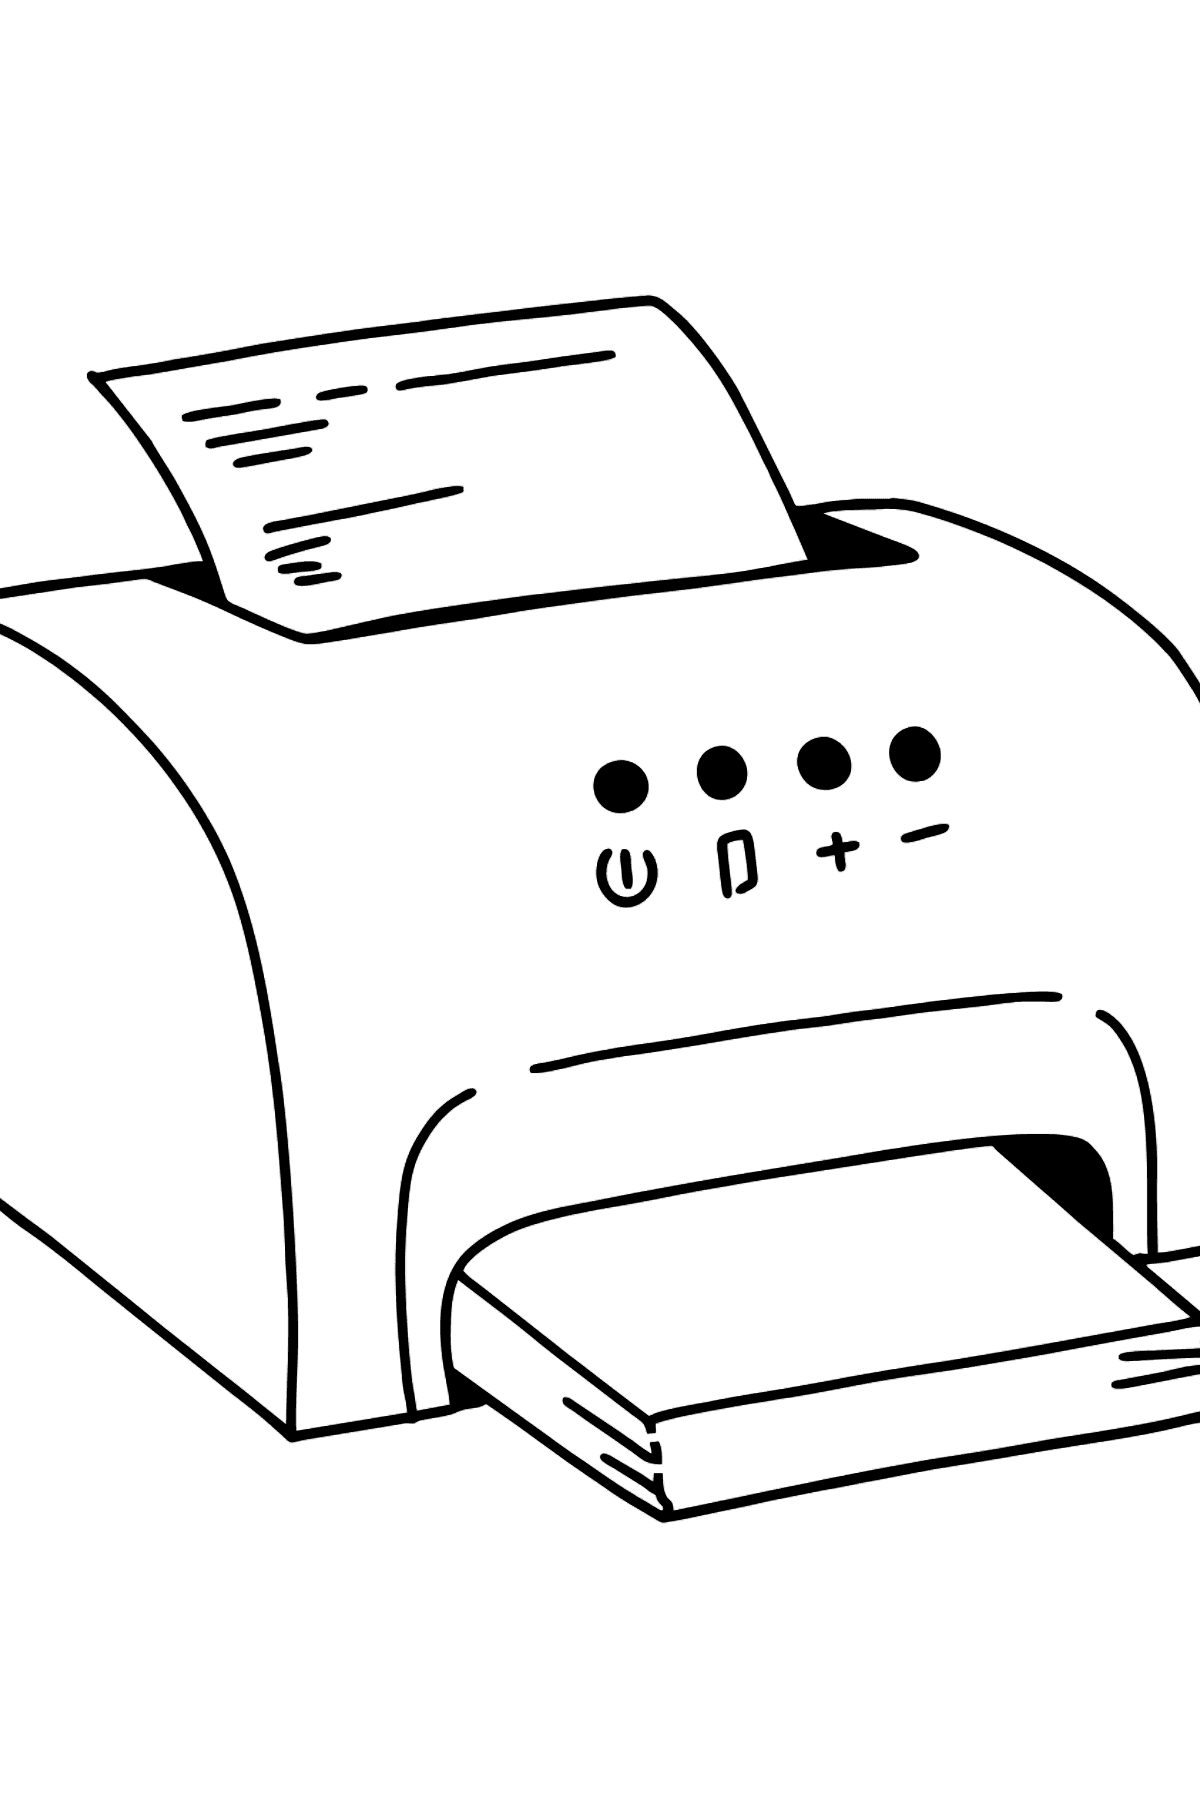 Printer coloring page - Coloring Pages for Kids